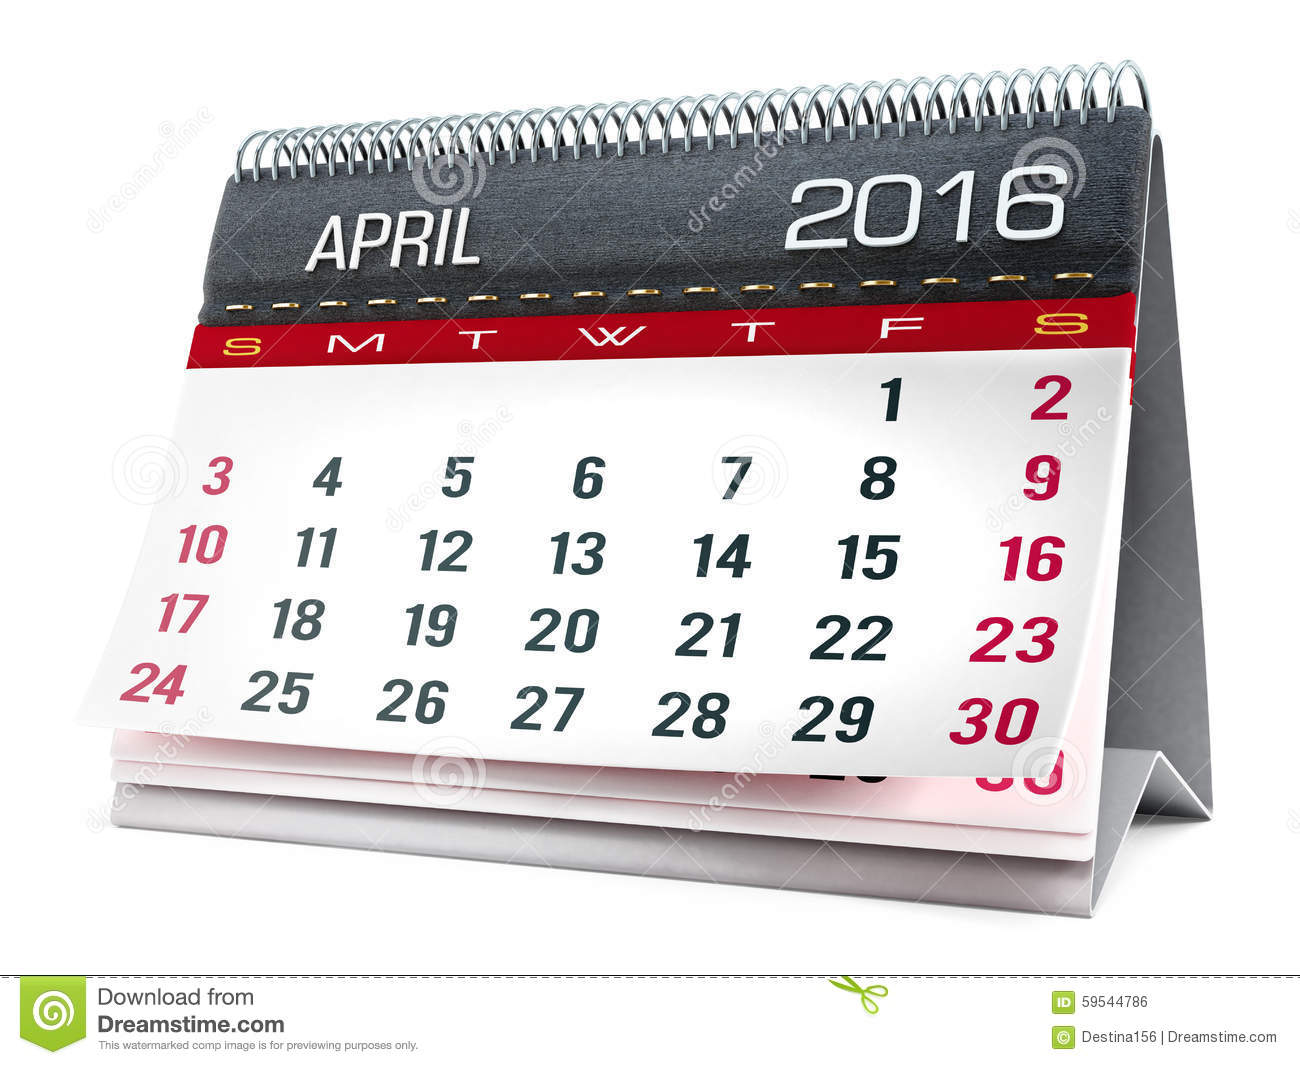 2016 january calendar clipart banner royalty free download April 2016 calendar with clipart - ClipartFest banner royalty free download